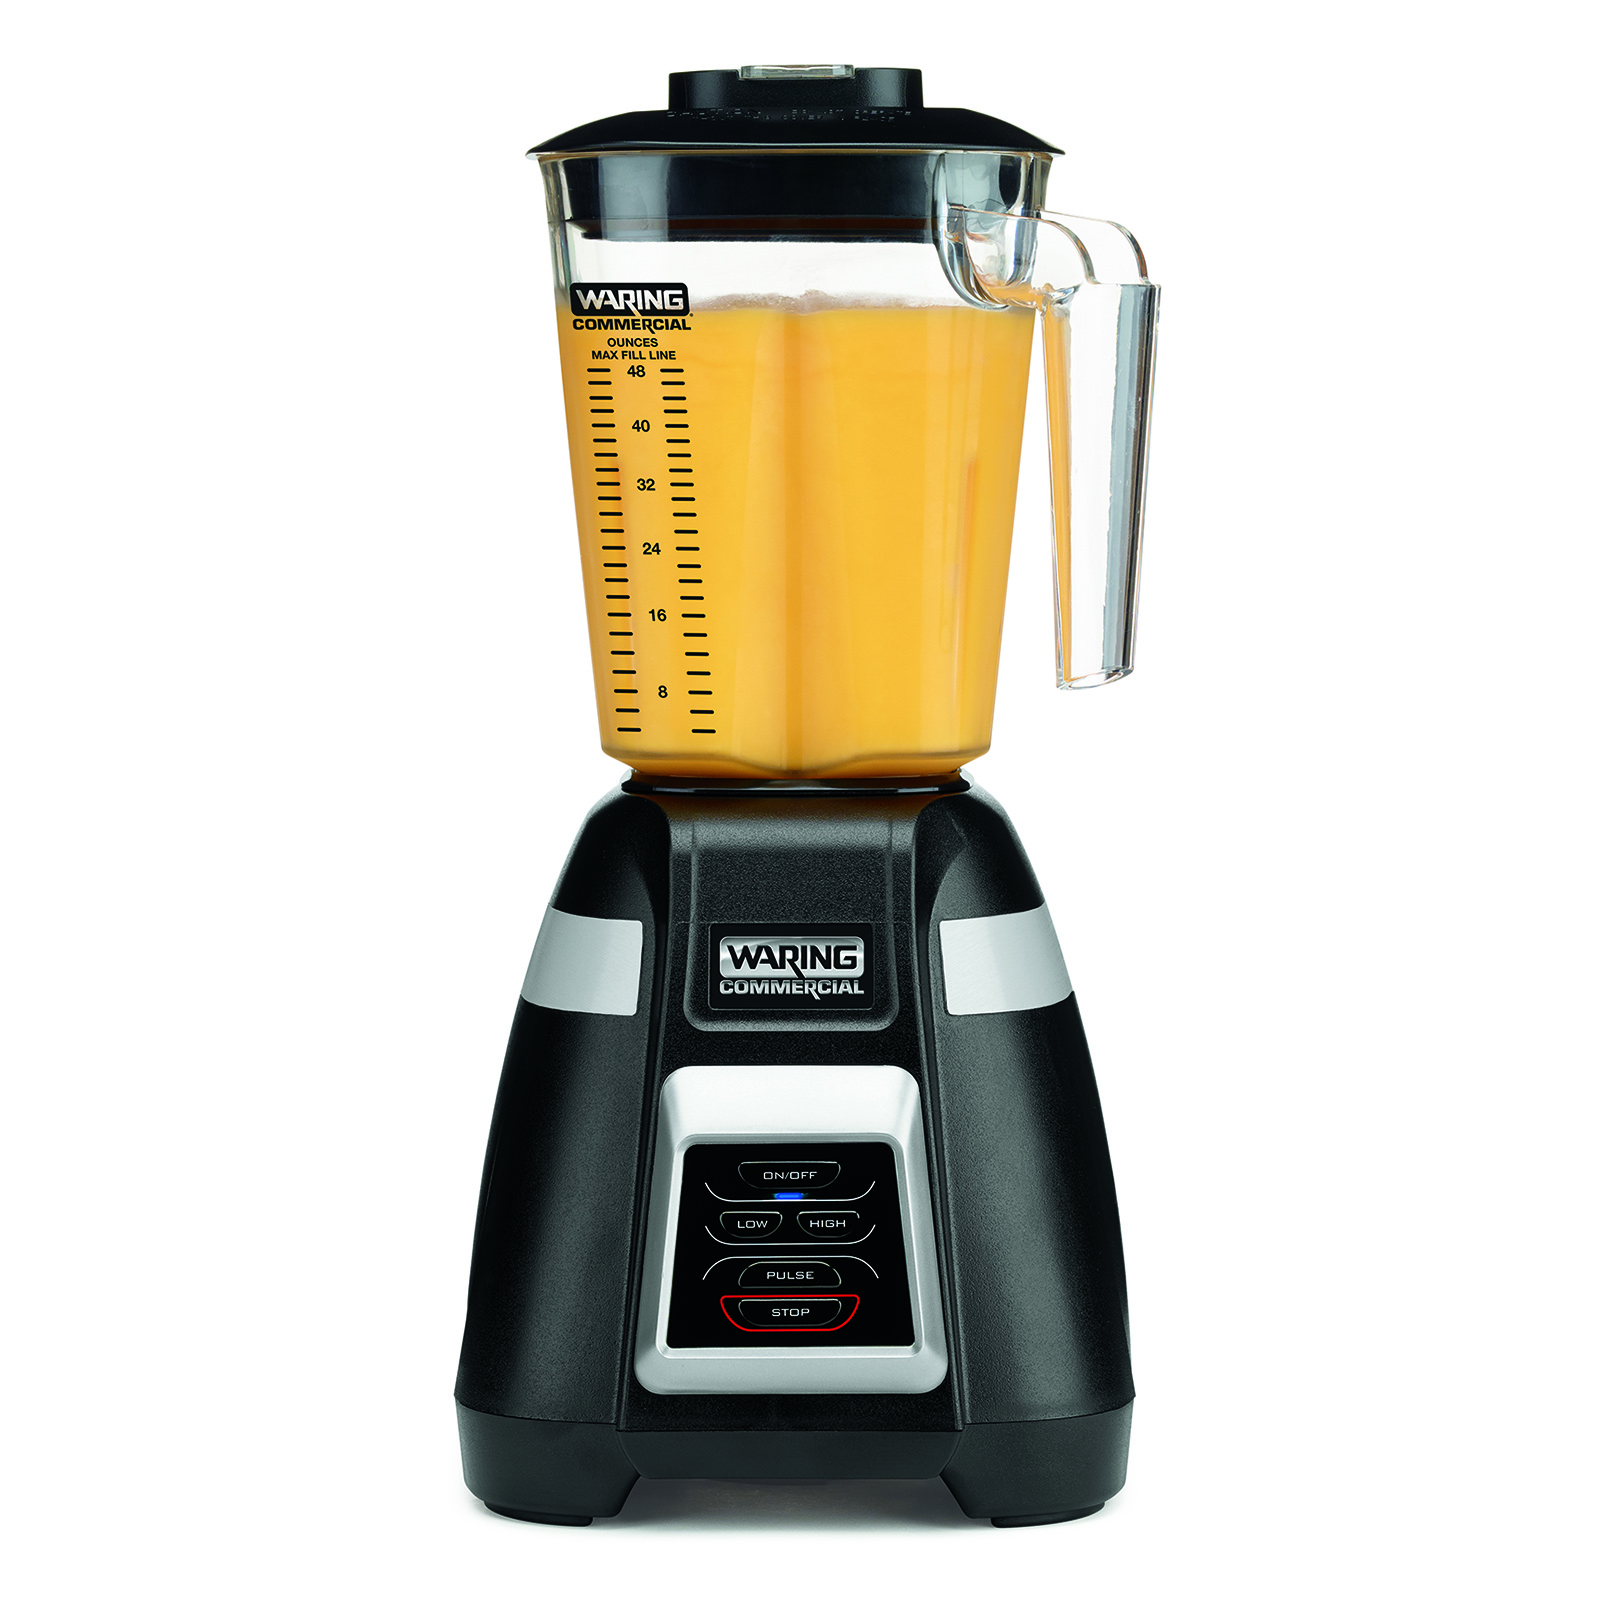 Waring BB320 blender, bar